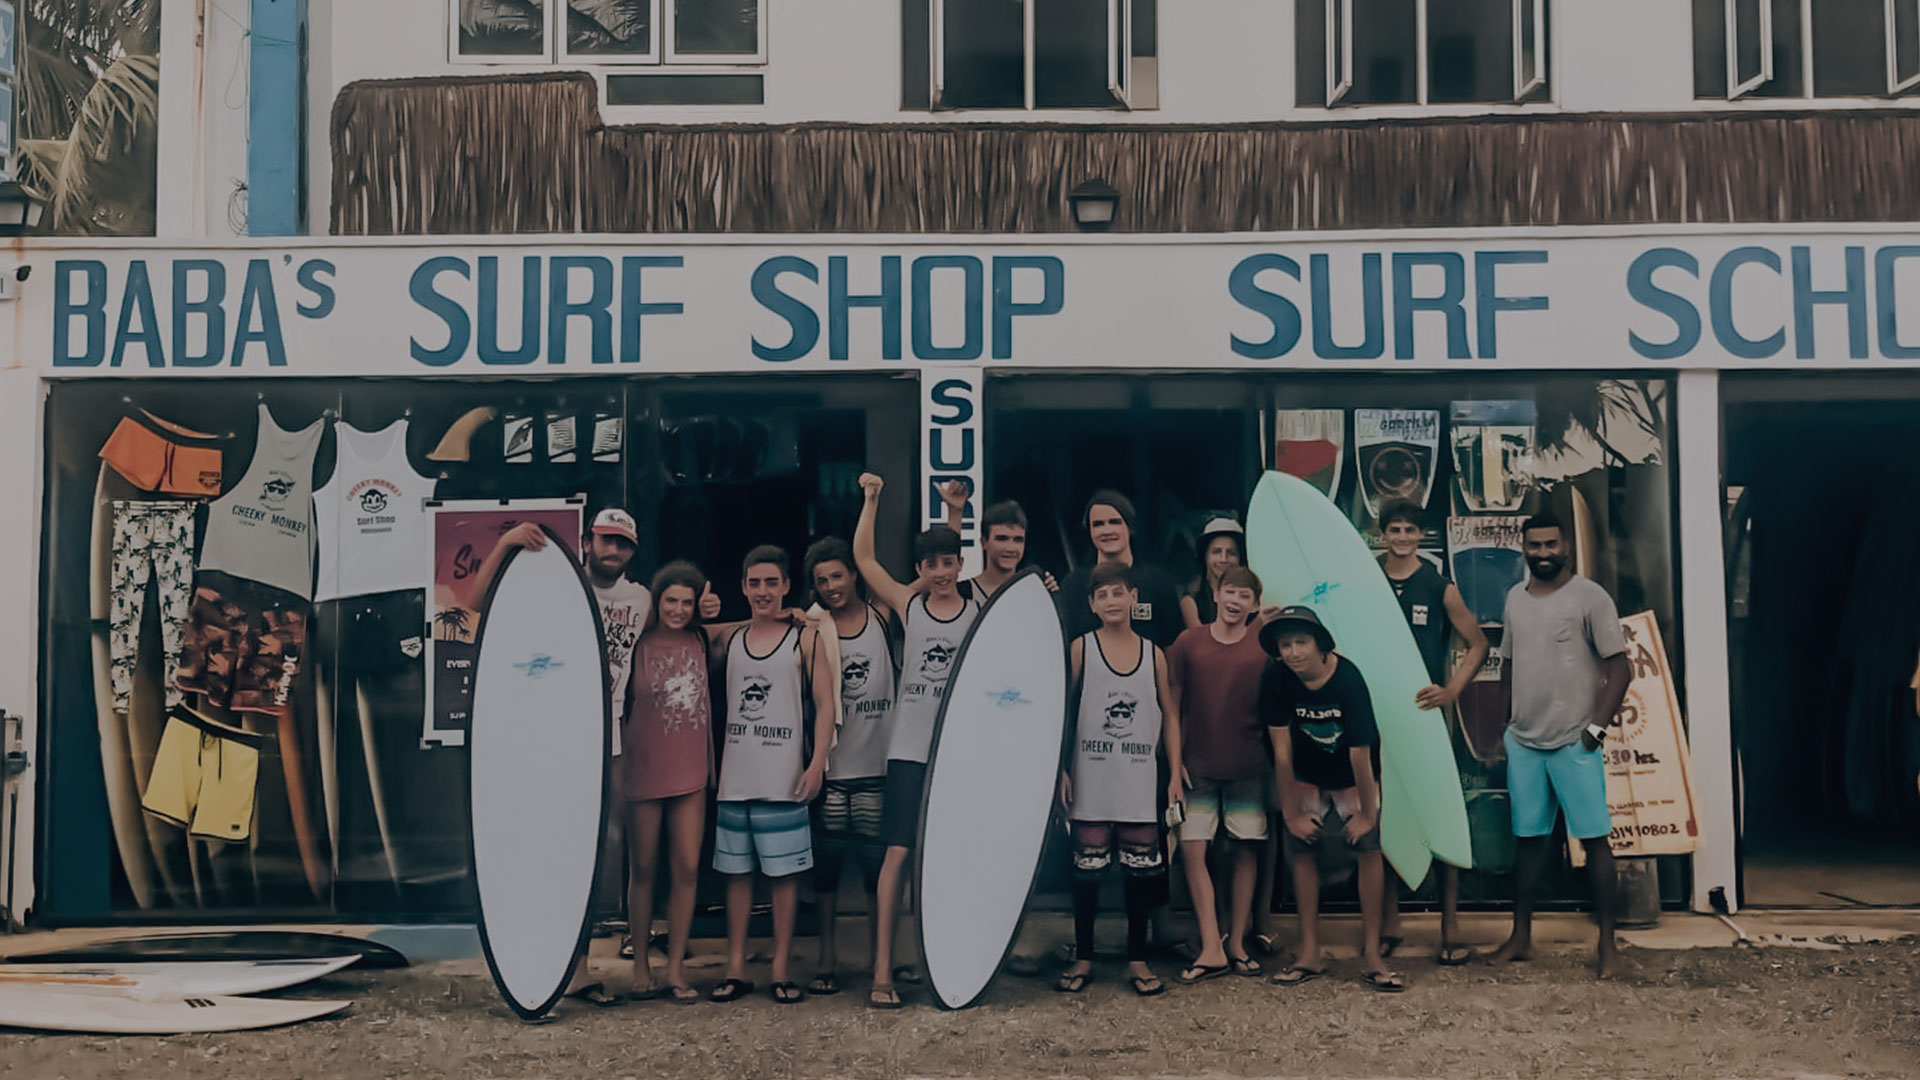 Happy clients in front of the Baba's surf shop